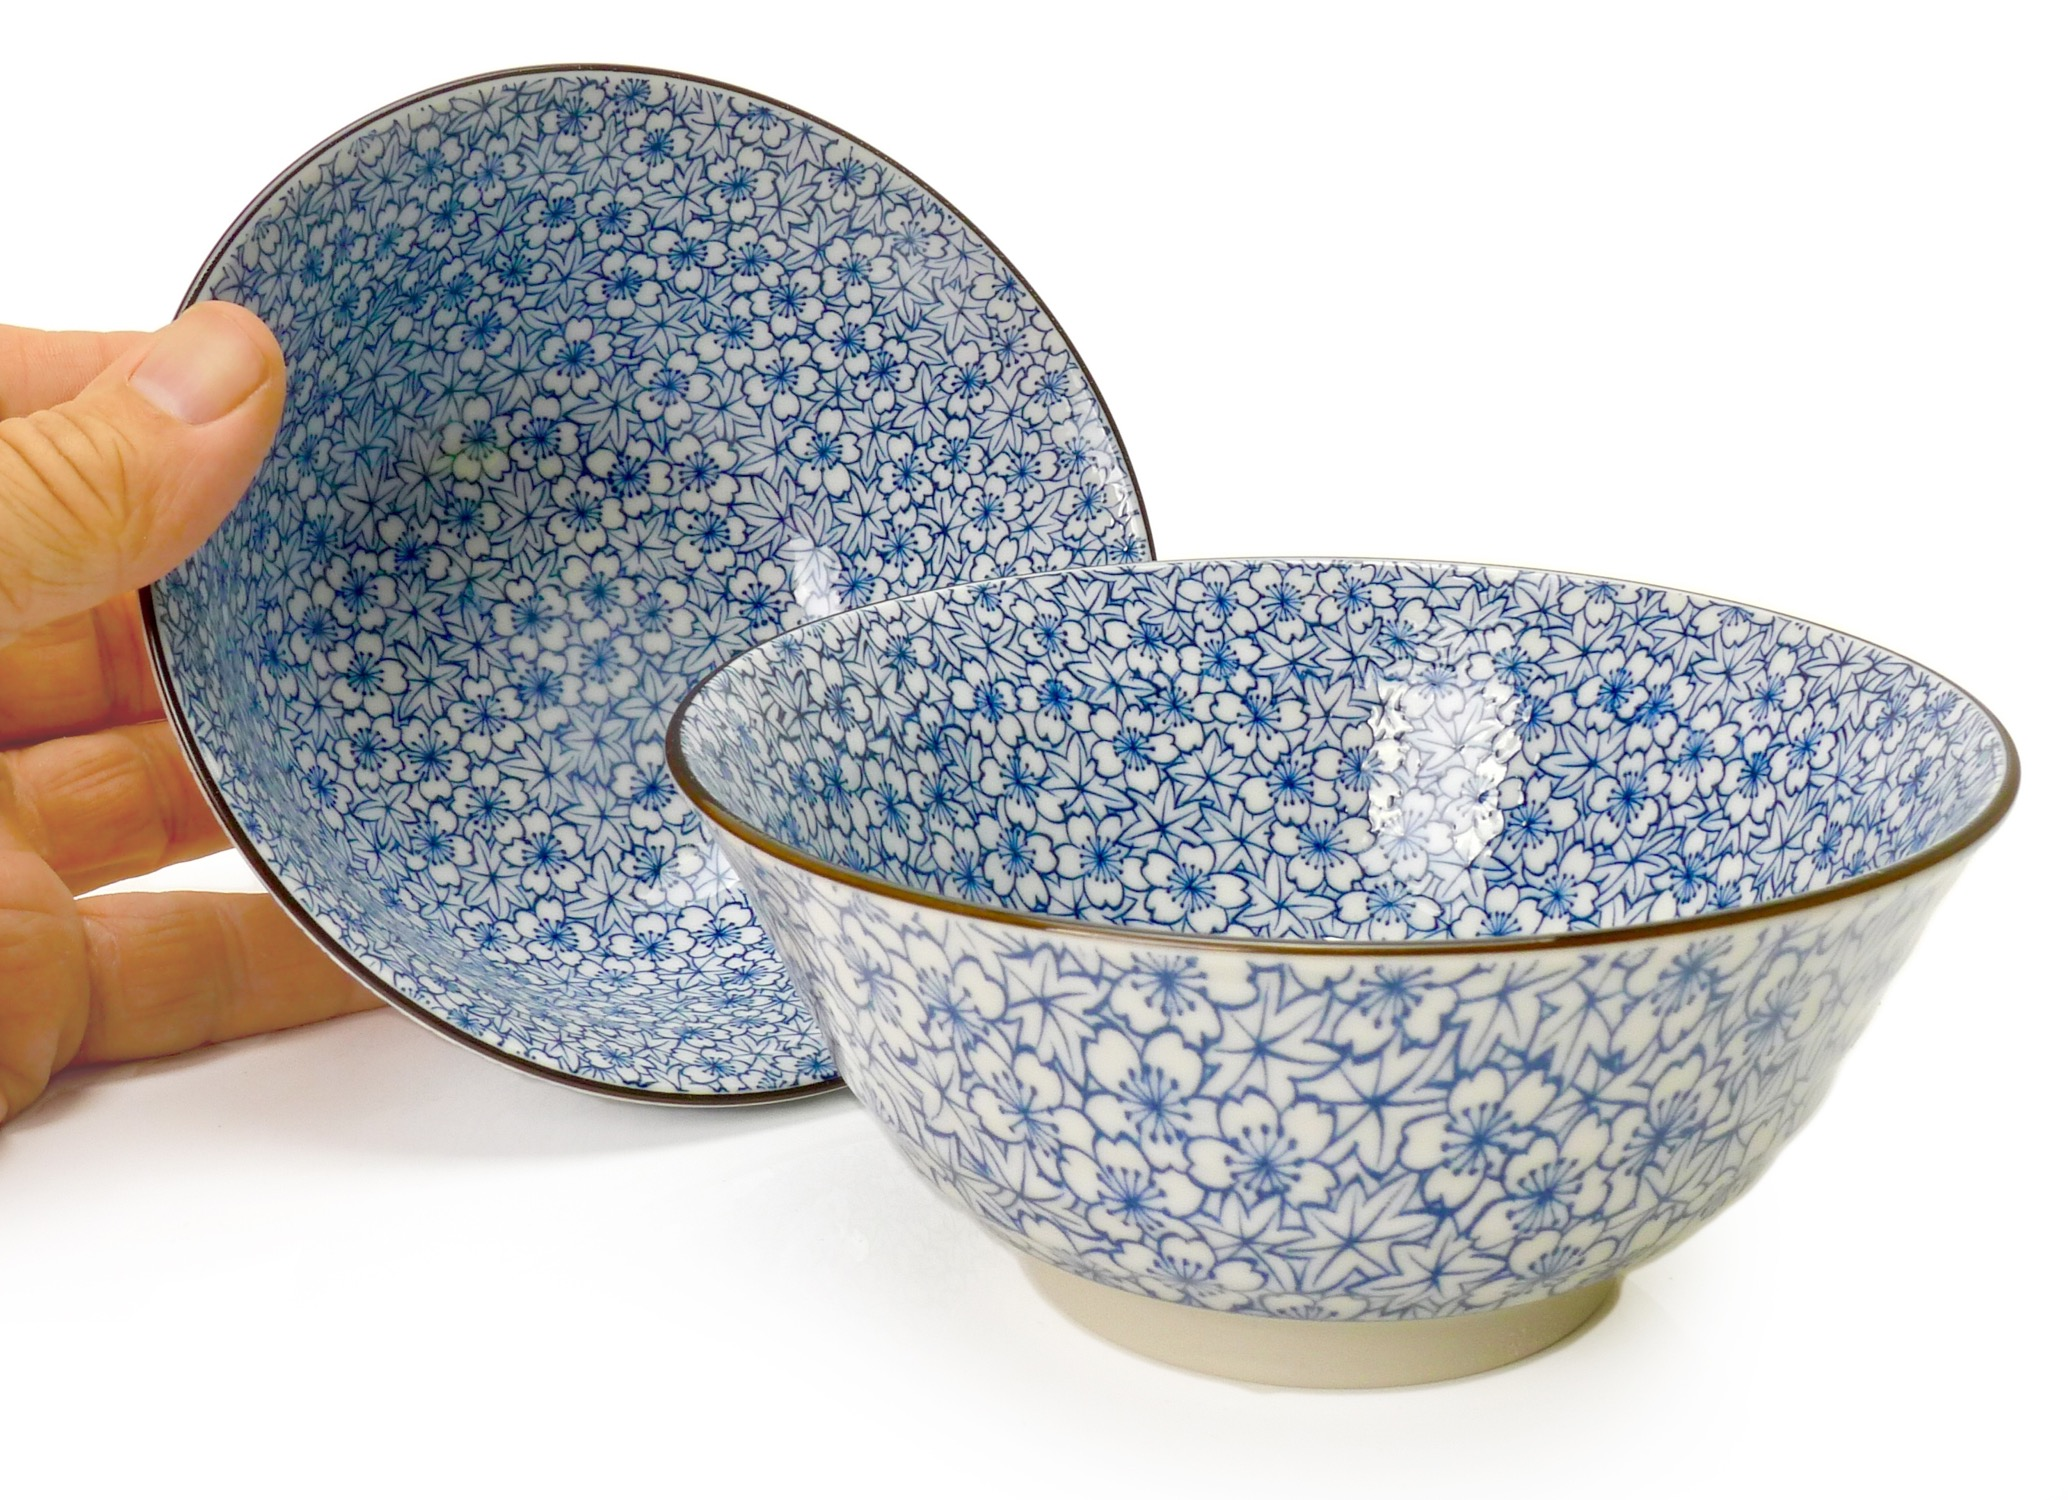 Image of Porcelain Bowls, Floral Blue, 4.75-Inch, Set Of Two